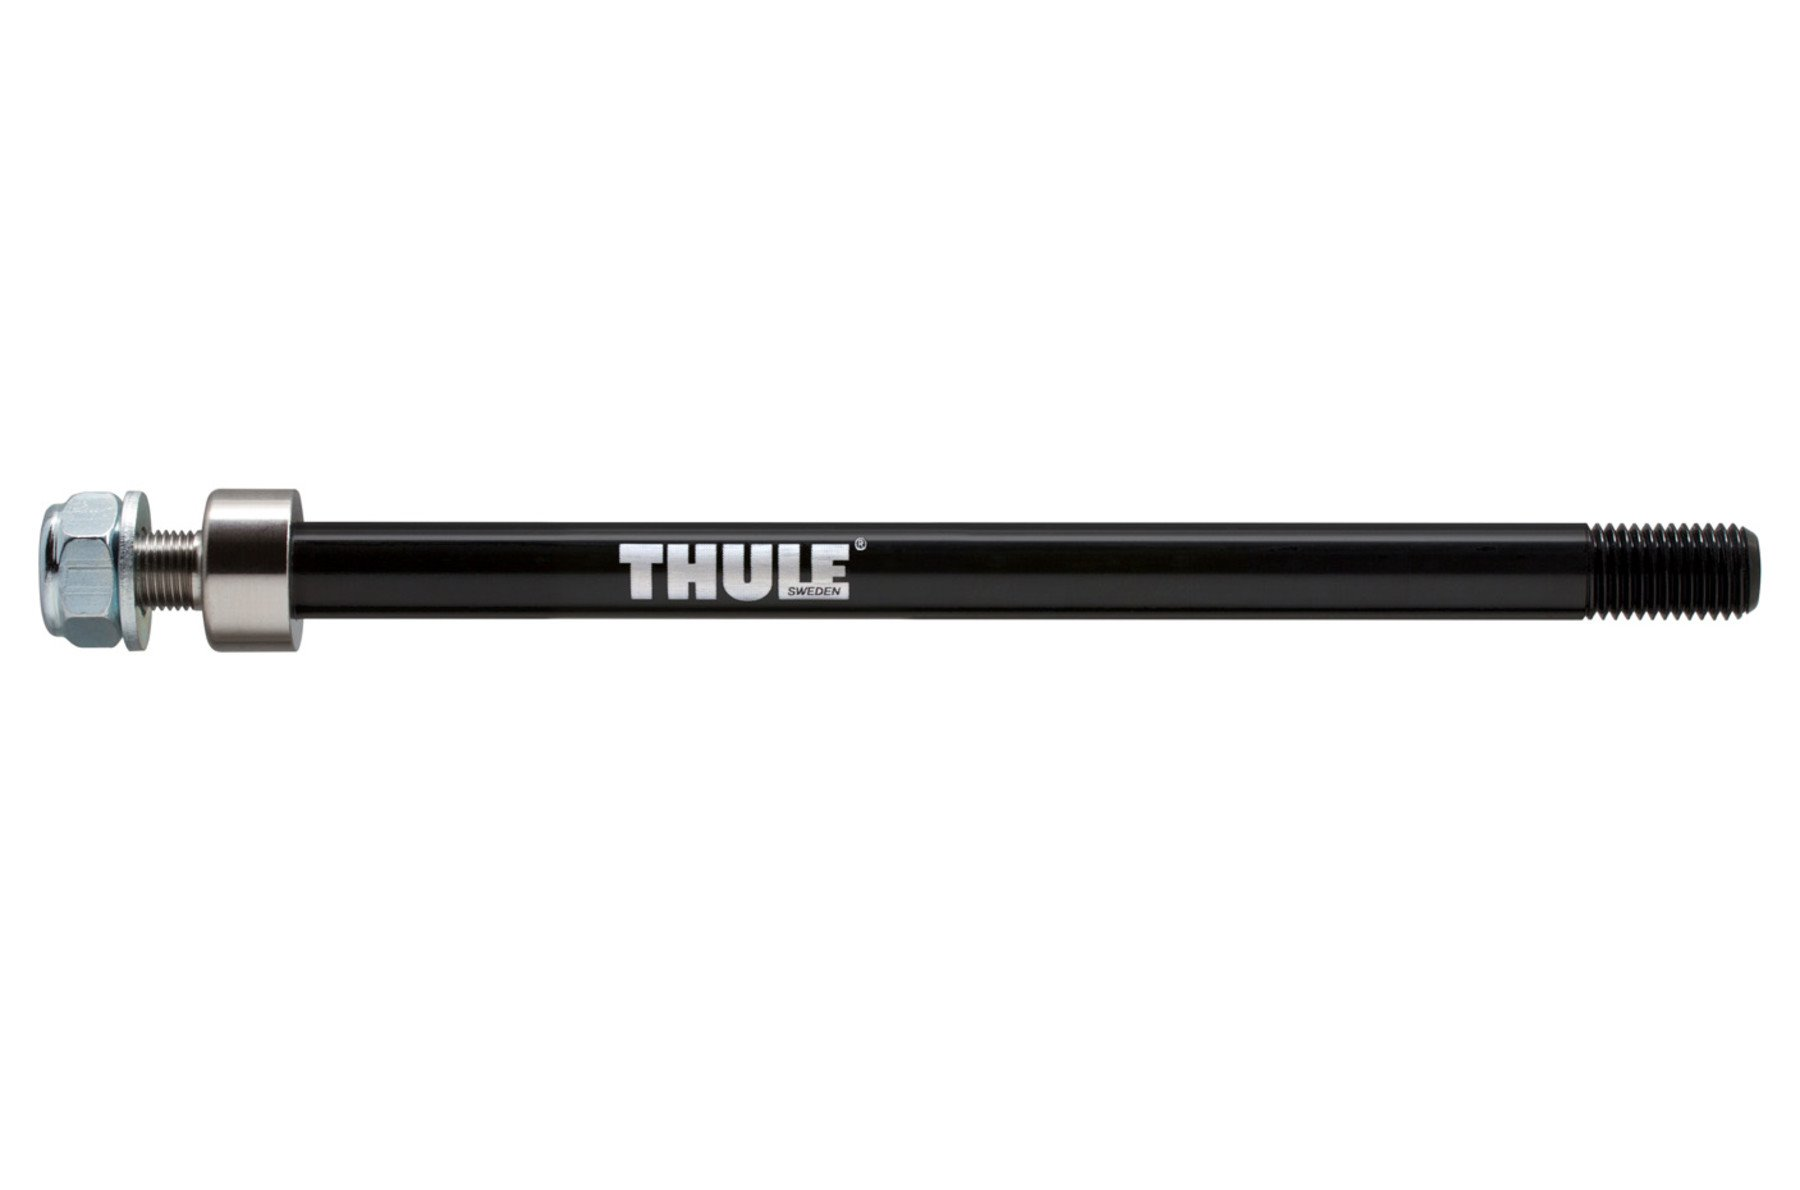 THULE SYNTACE X 12 AXLE ADAPTER M12X1 75 217   229 mm